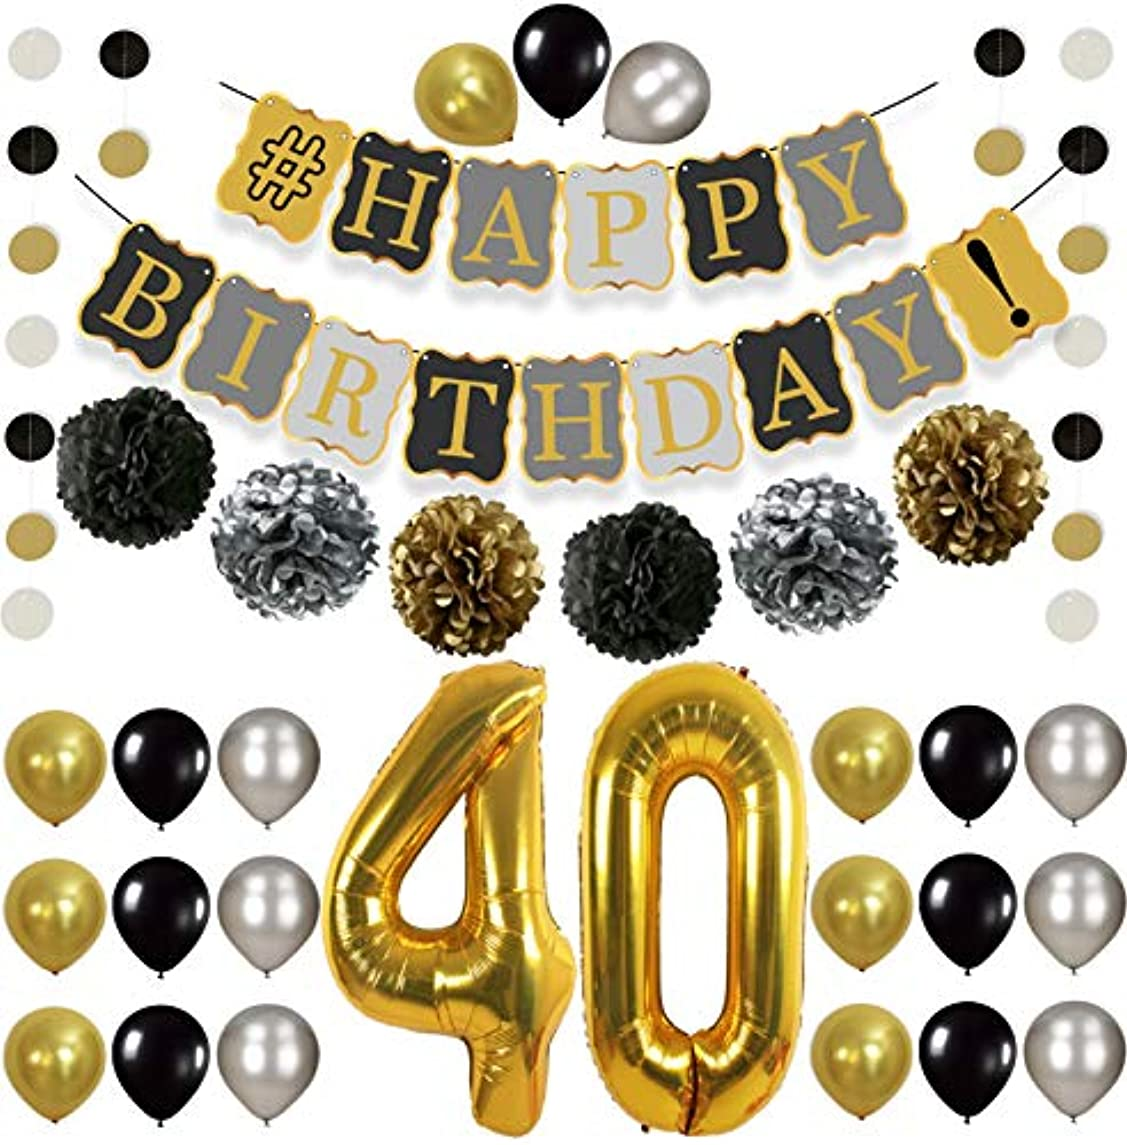 Vintage 40th BIRTHDAY DECORATIONS PARTY KIT -Black Gold and Silver Paper PomPoms   Latex Balloons   Gold Number 40 Ballon   Circle Garland   40th Birthday Balloons 40 Years Old Birthday Party Supplies